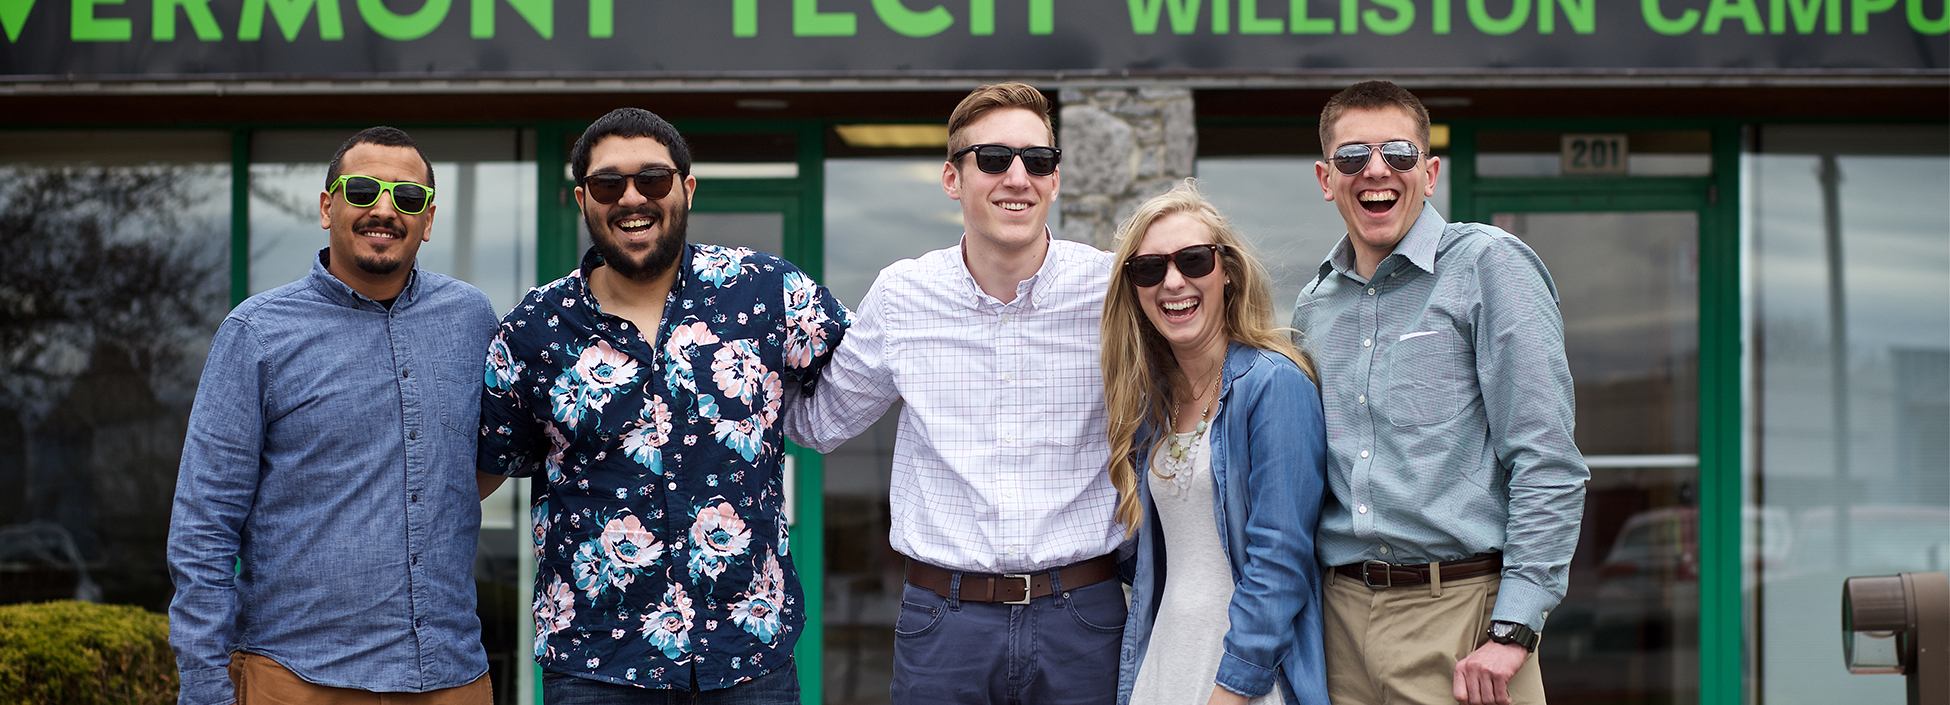 Five Vermont Tech students wearing sunglasses stand outside the Williston Campus Administration building